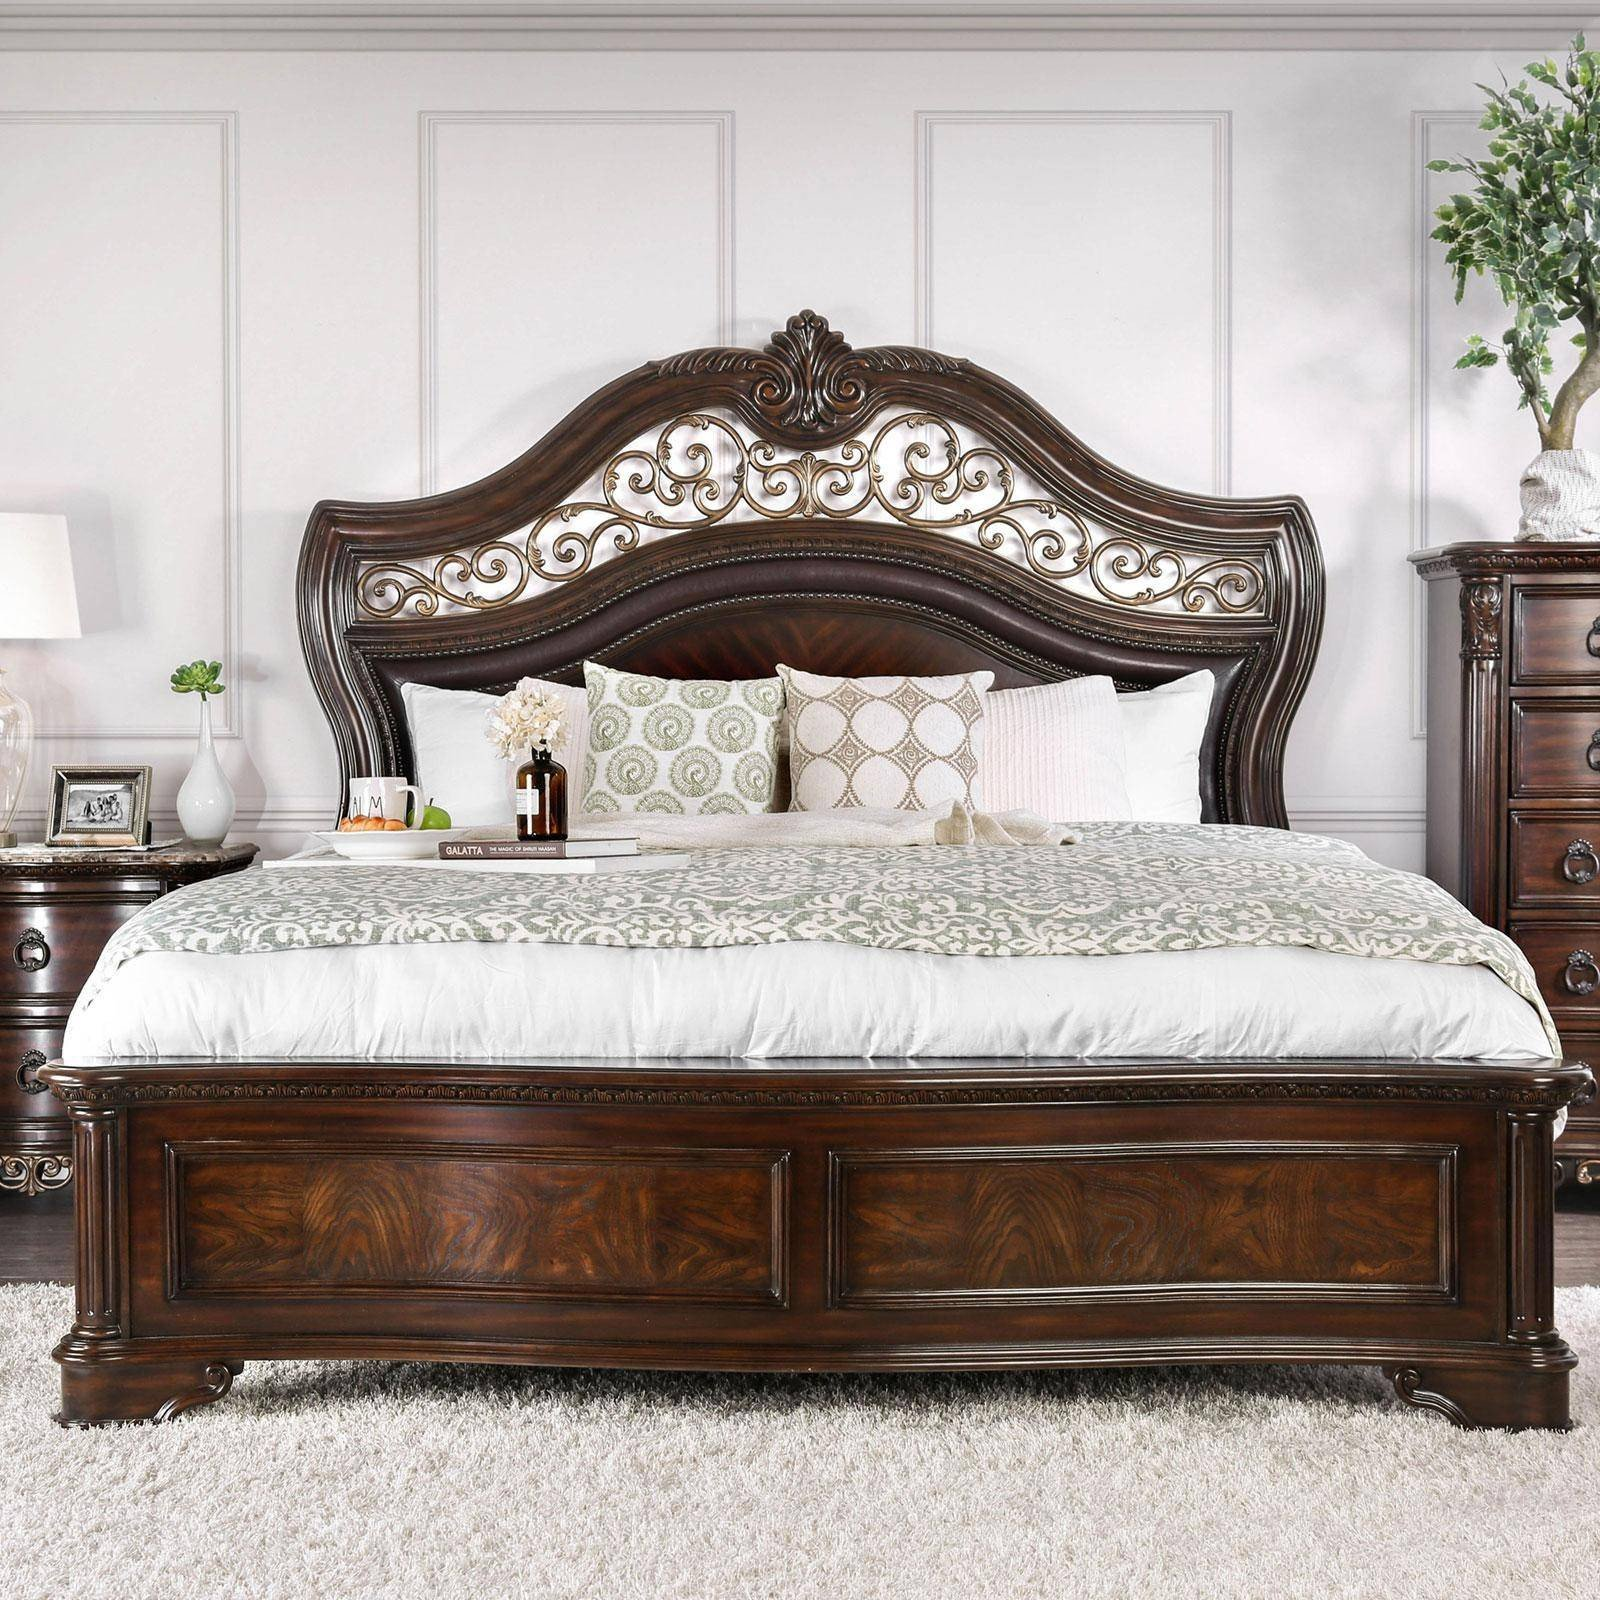 Wood Queen Bedroom Set Best Of Wood Queen Bedroom Set 4pcs Brown Menodora Furniture Of